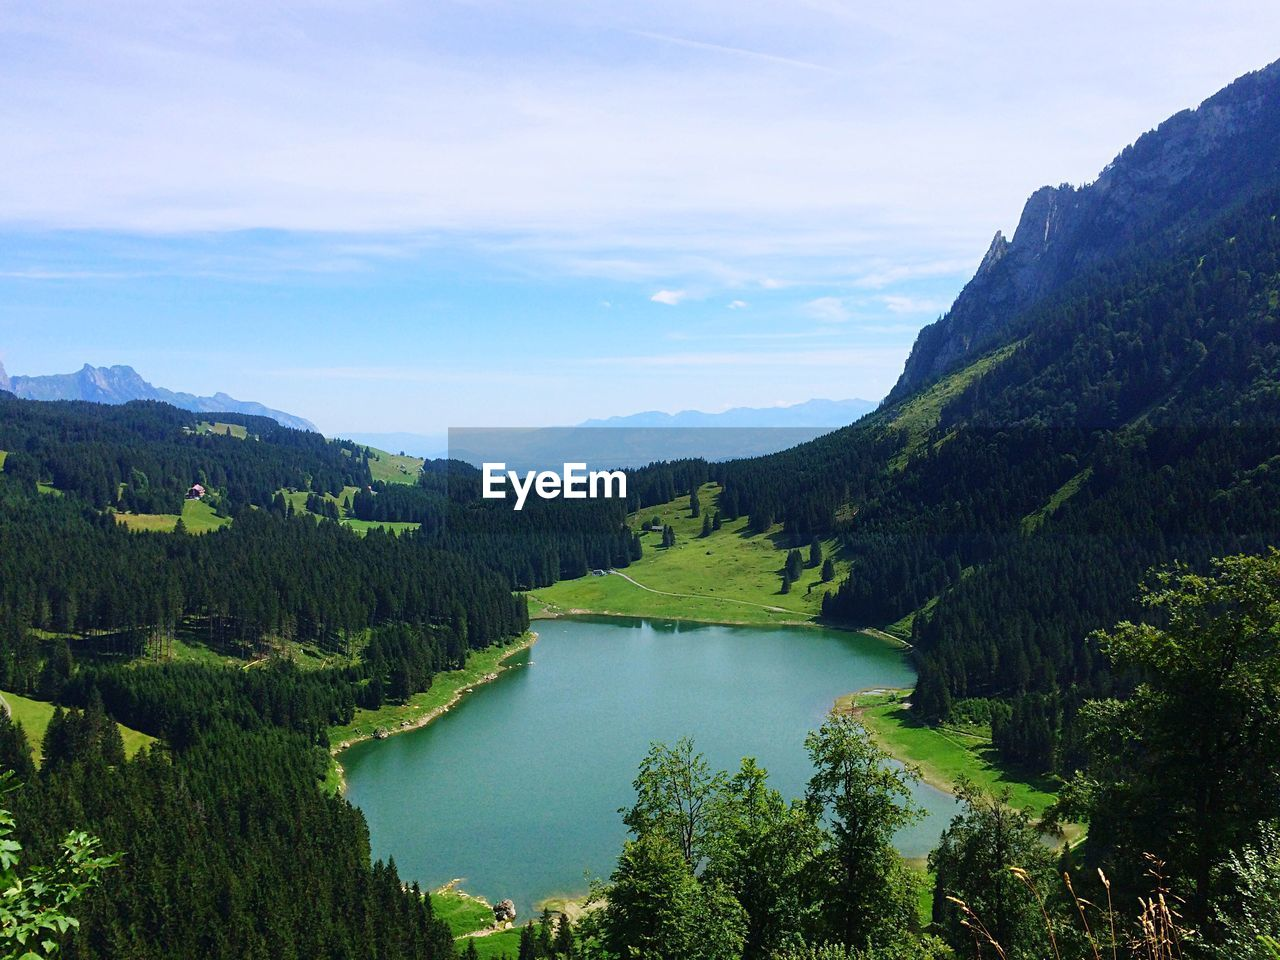 scenics - nature, tranquil scene, tranquility, beauty in nature, tree, water, sky, mountain, plant, non-urban scene, green color, idyllic, lake, cloud - sky, nature, environment, landscape, day, no people, mountain range, outdoors